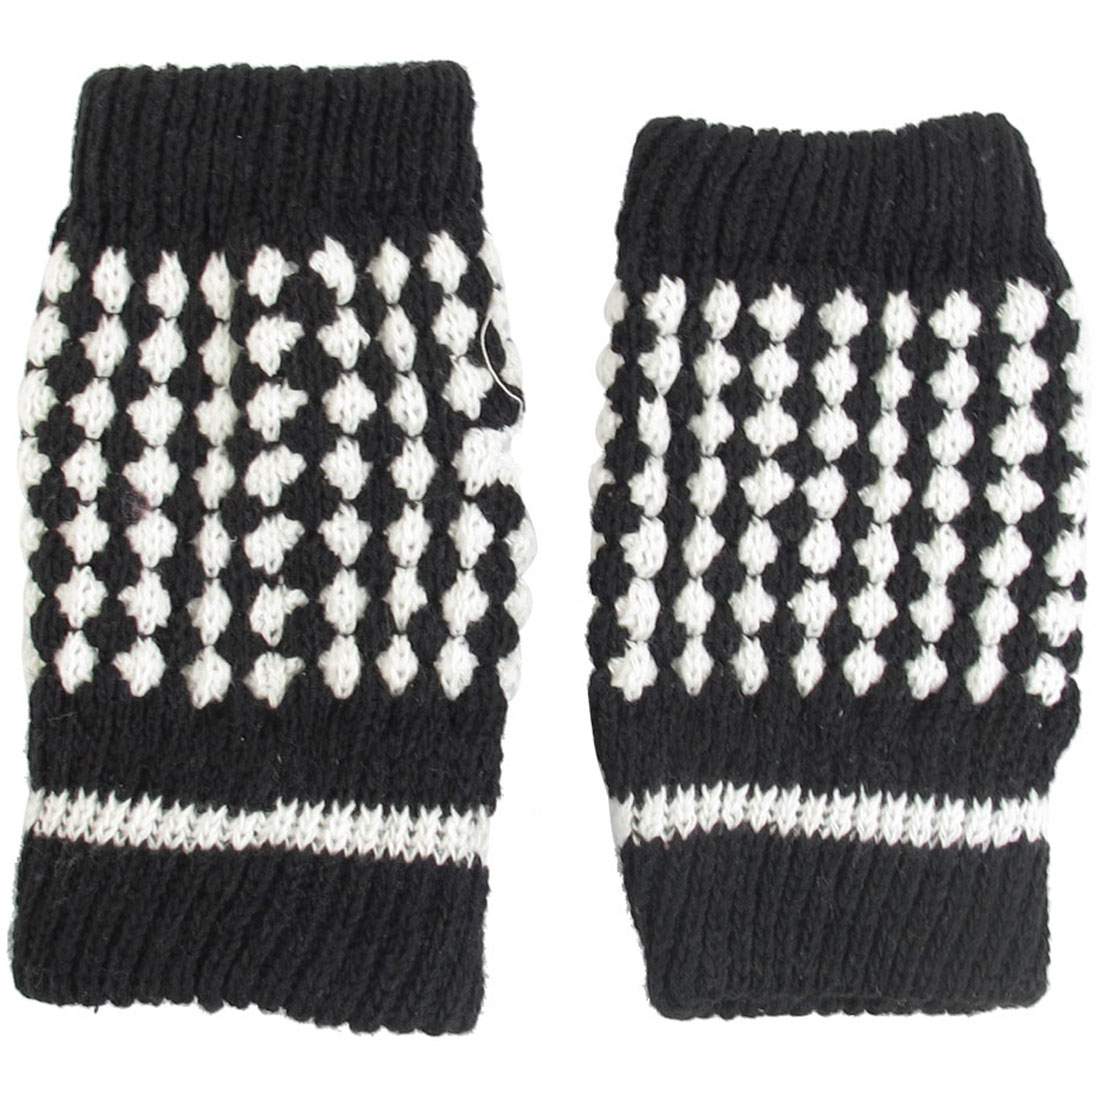 Ladies Black White Winter Warmer Knitted Fingerless Gloves Mittens